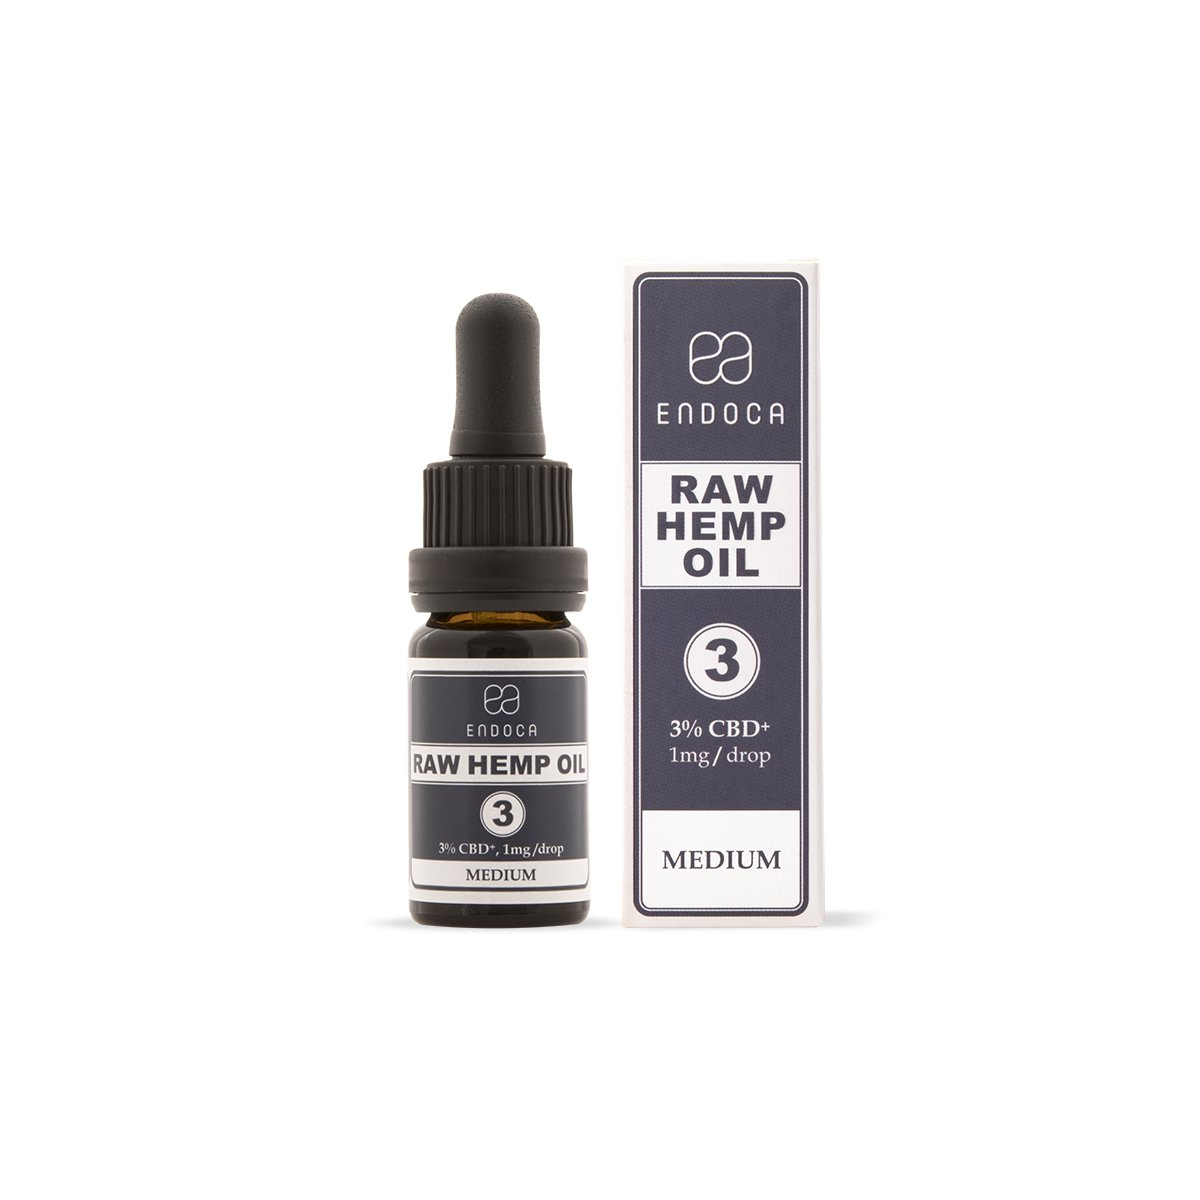 Raw Hemp Oil Drops - 300mg CBD + CBDa (3%)